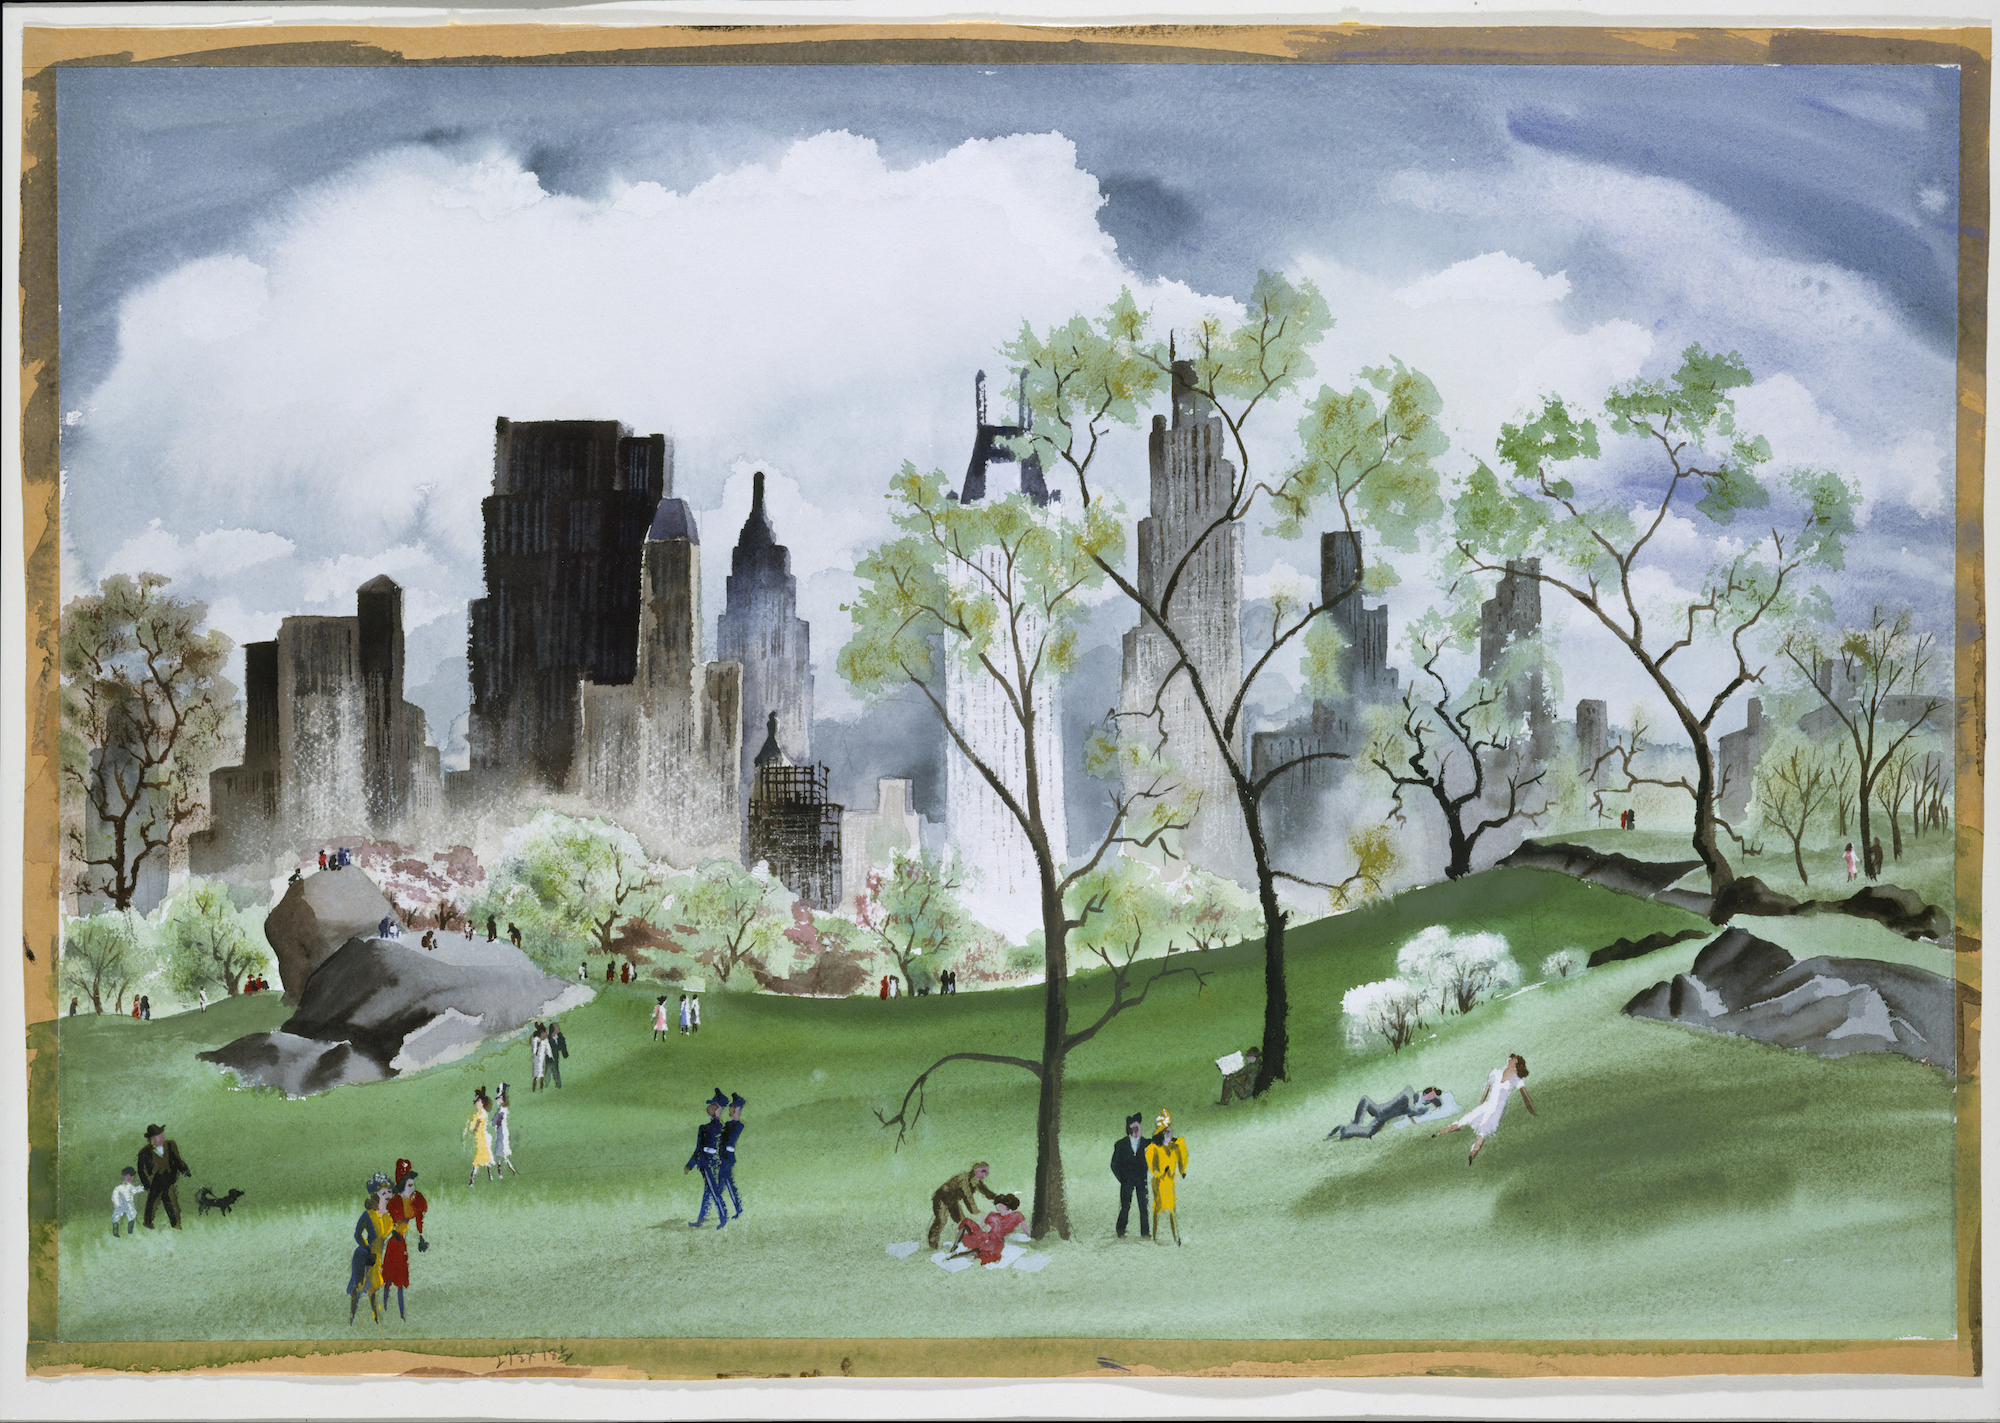 https://www.artistbkfoundation.org/Adolf Dehn  . new-gallery-events